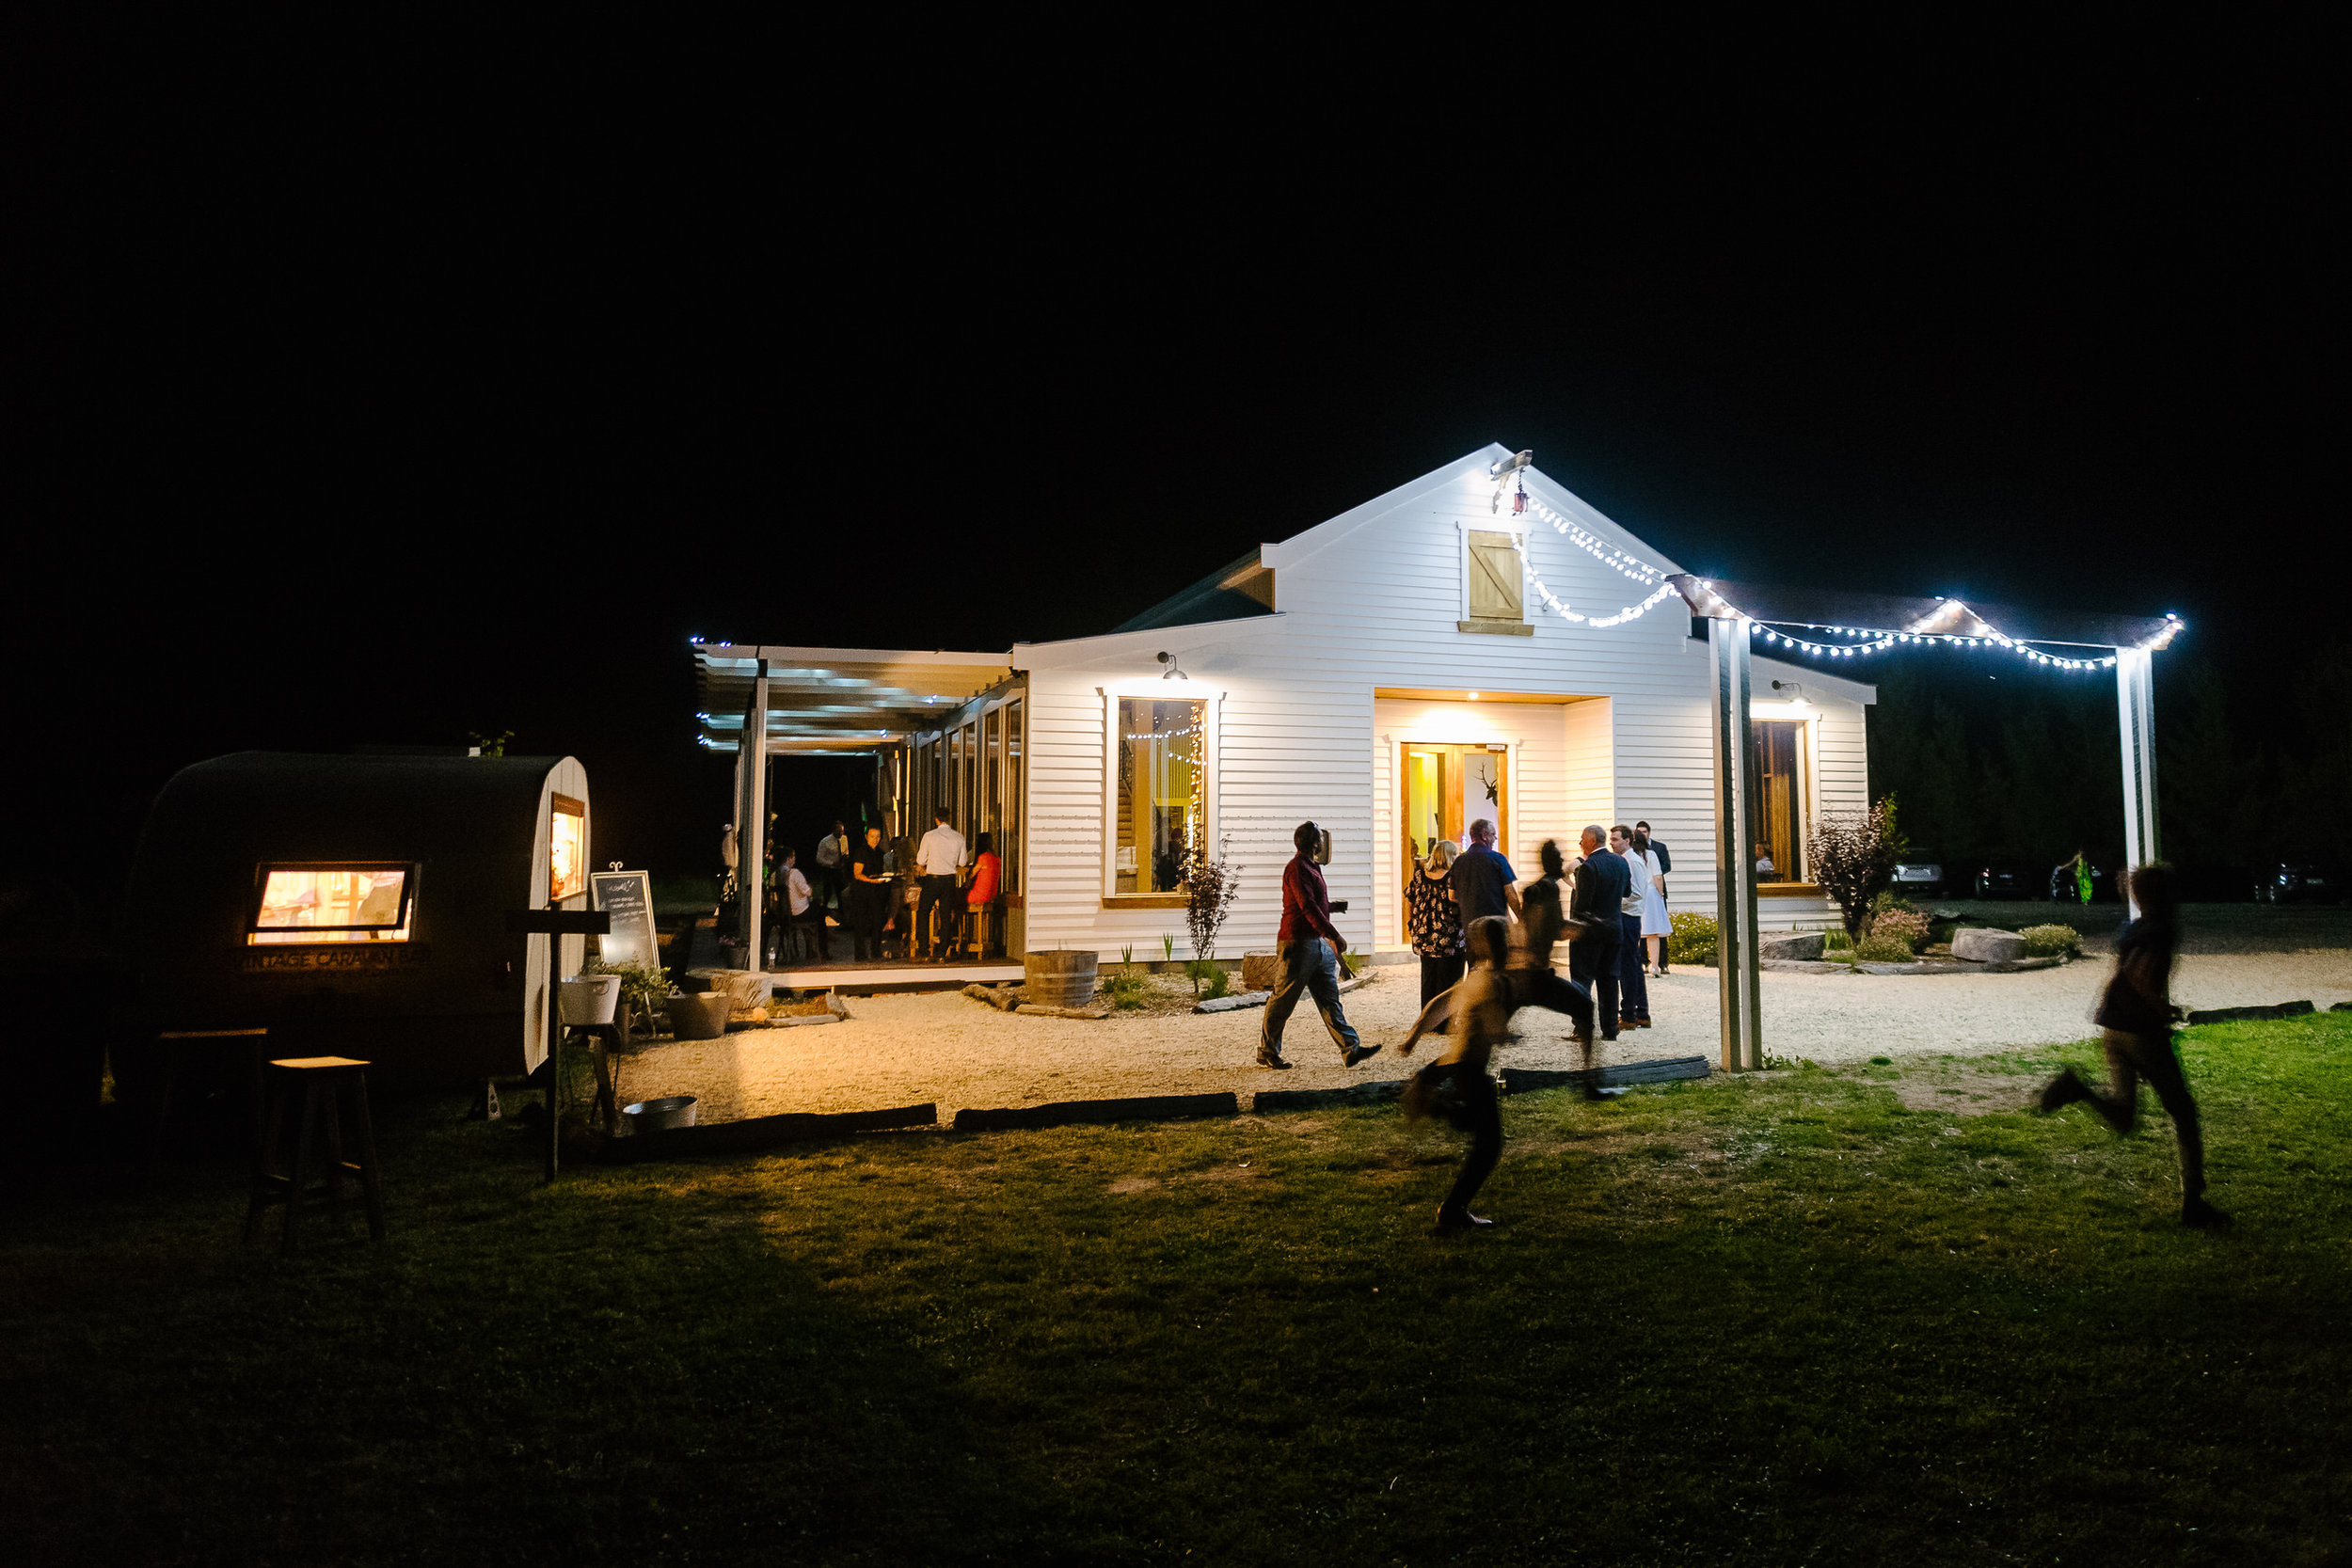 Justin_And_Jim_Photography_Byrchendale_Barn_Wedding88.JPG